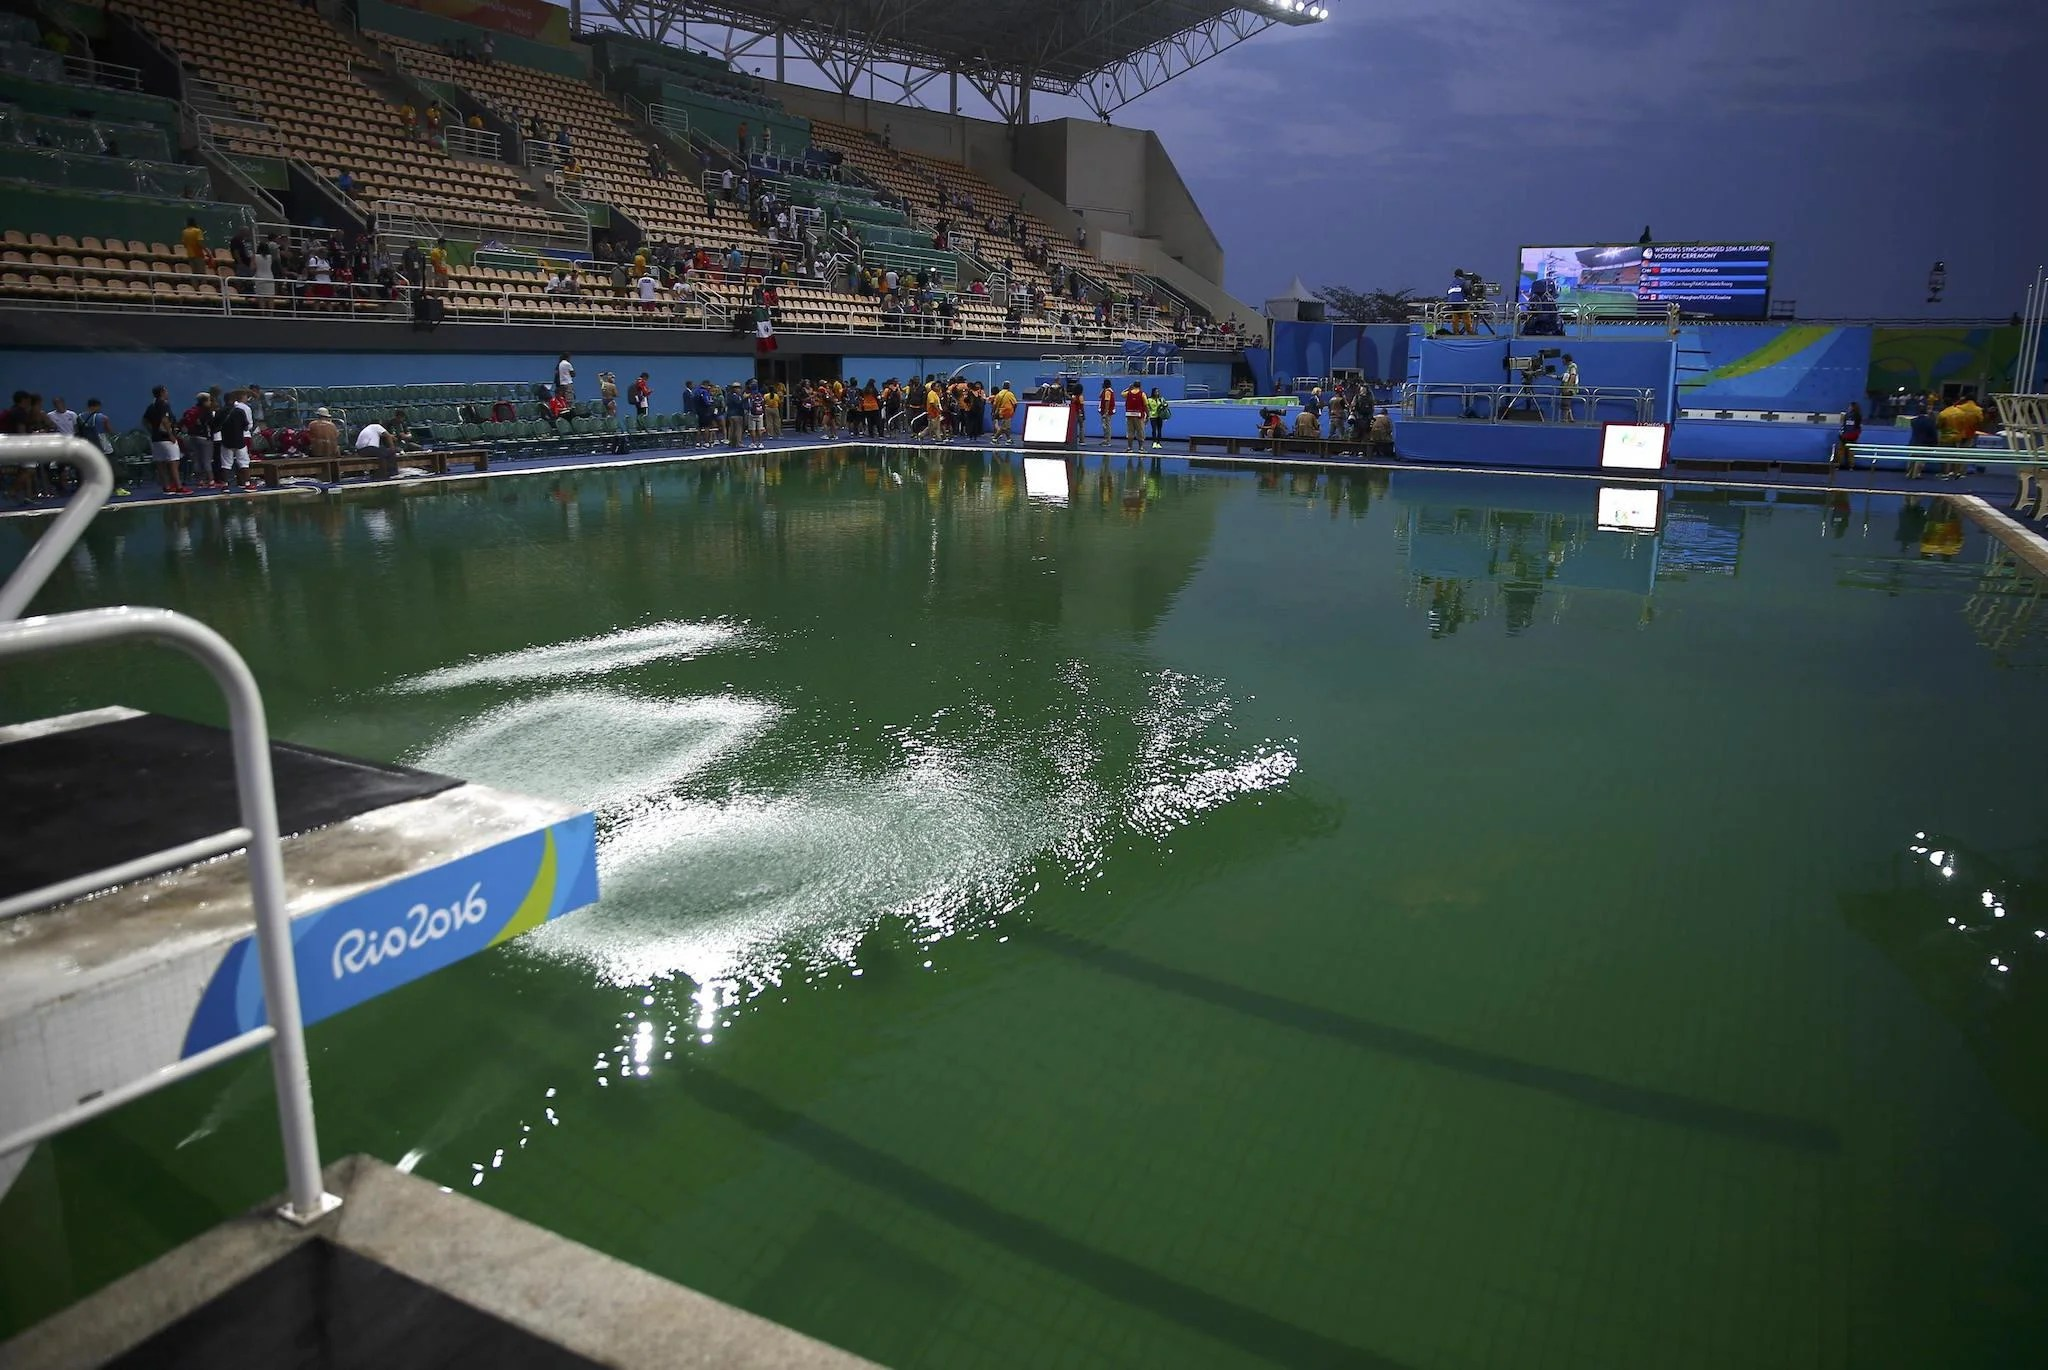 Rio Olympic Rio 2016 Green Olympic Diving Pool Is Safe Say Officials But